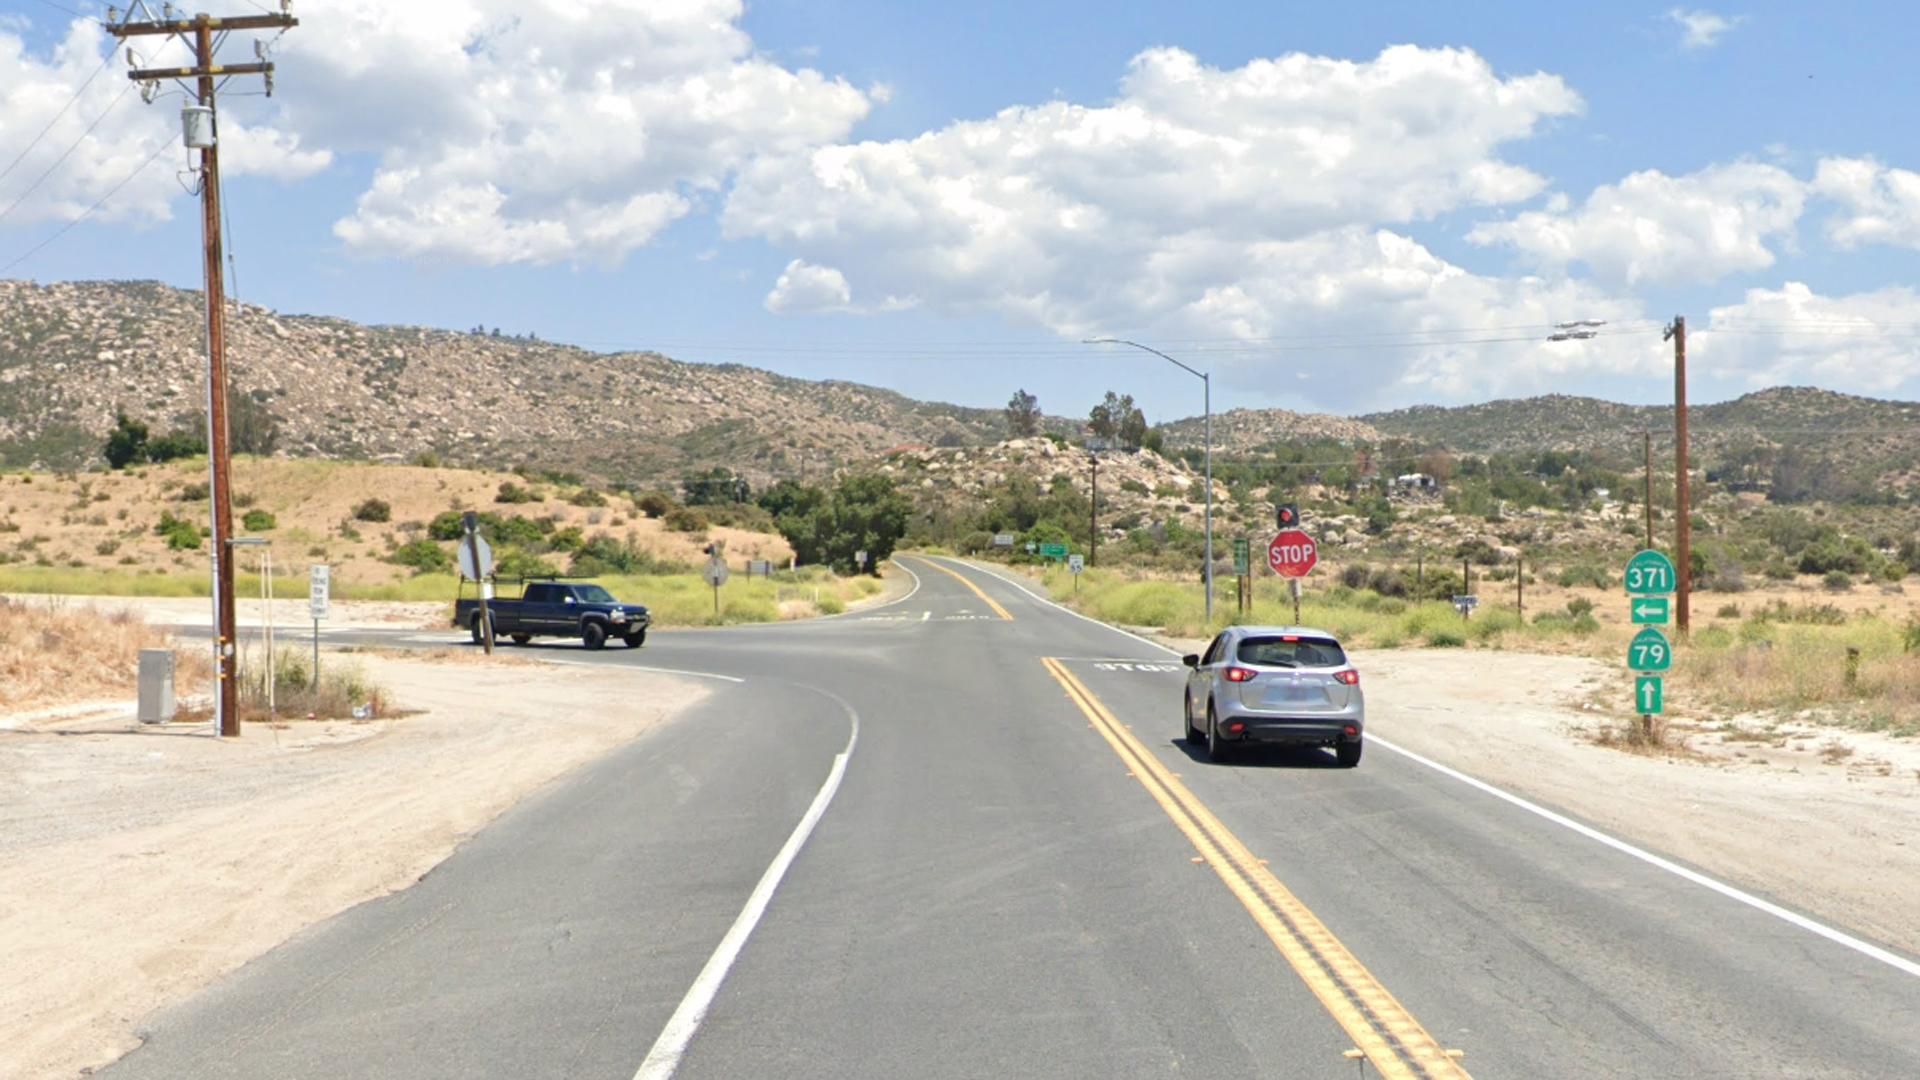 The 45000 block of Highway 79 in Aguanga, as viewed in a Google Street View image.